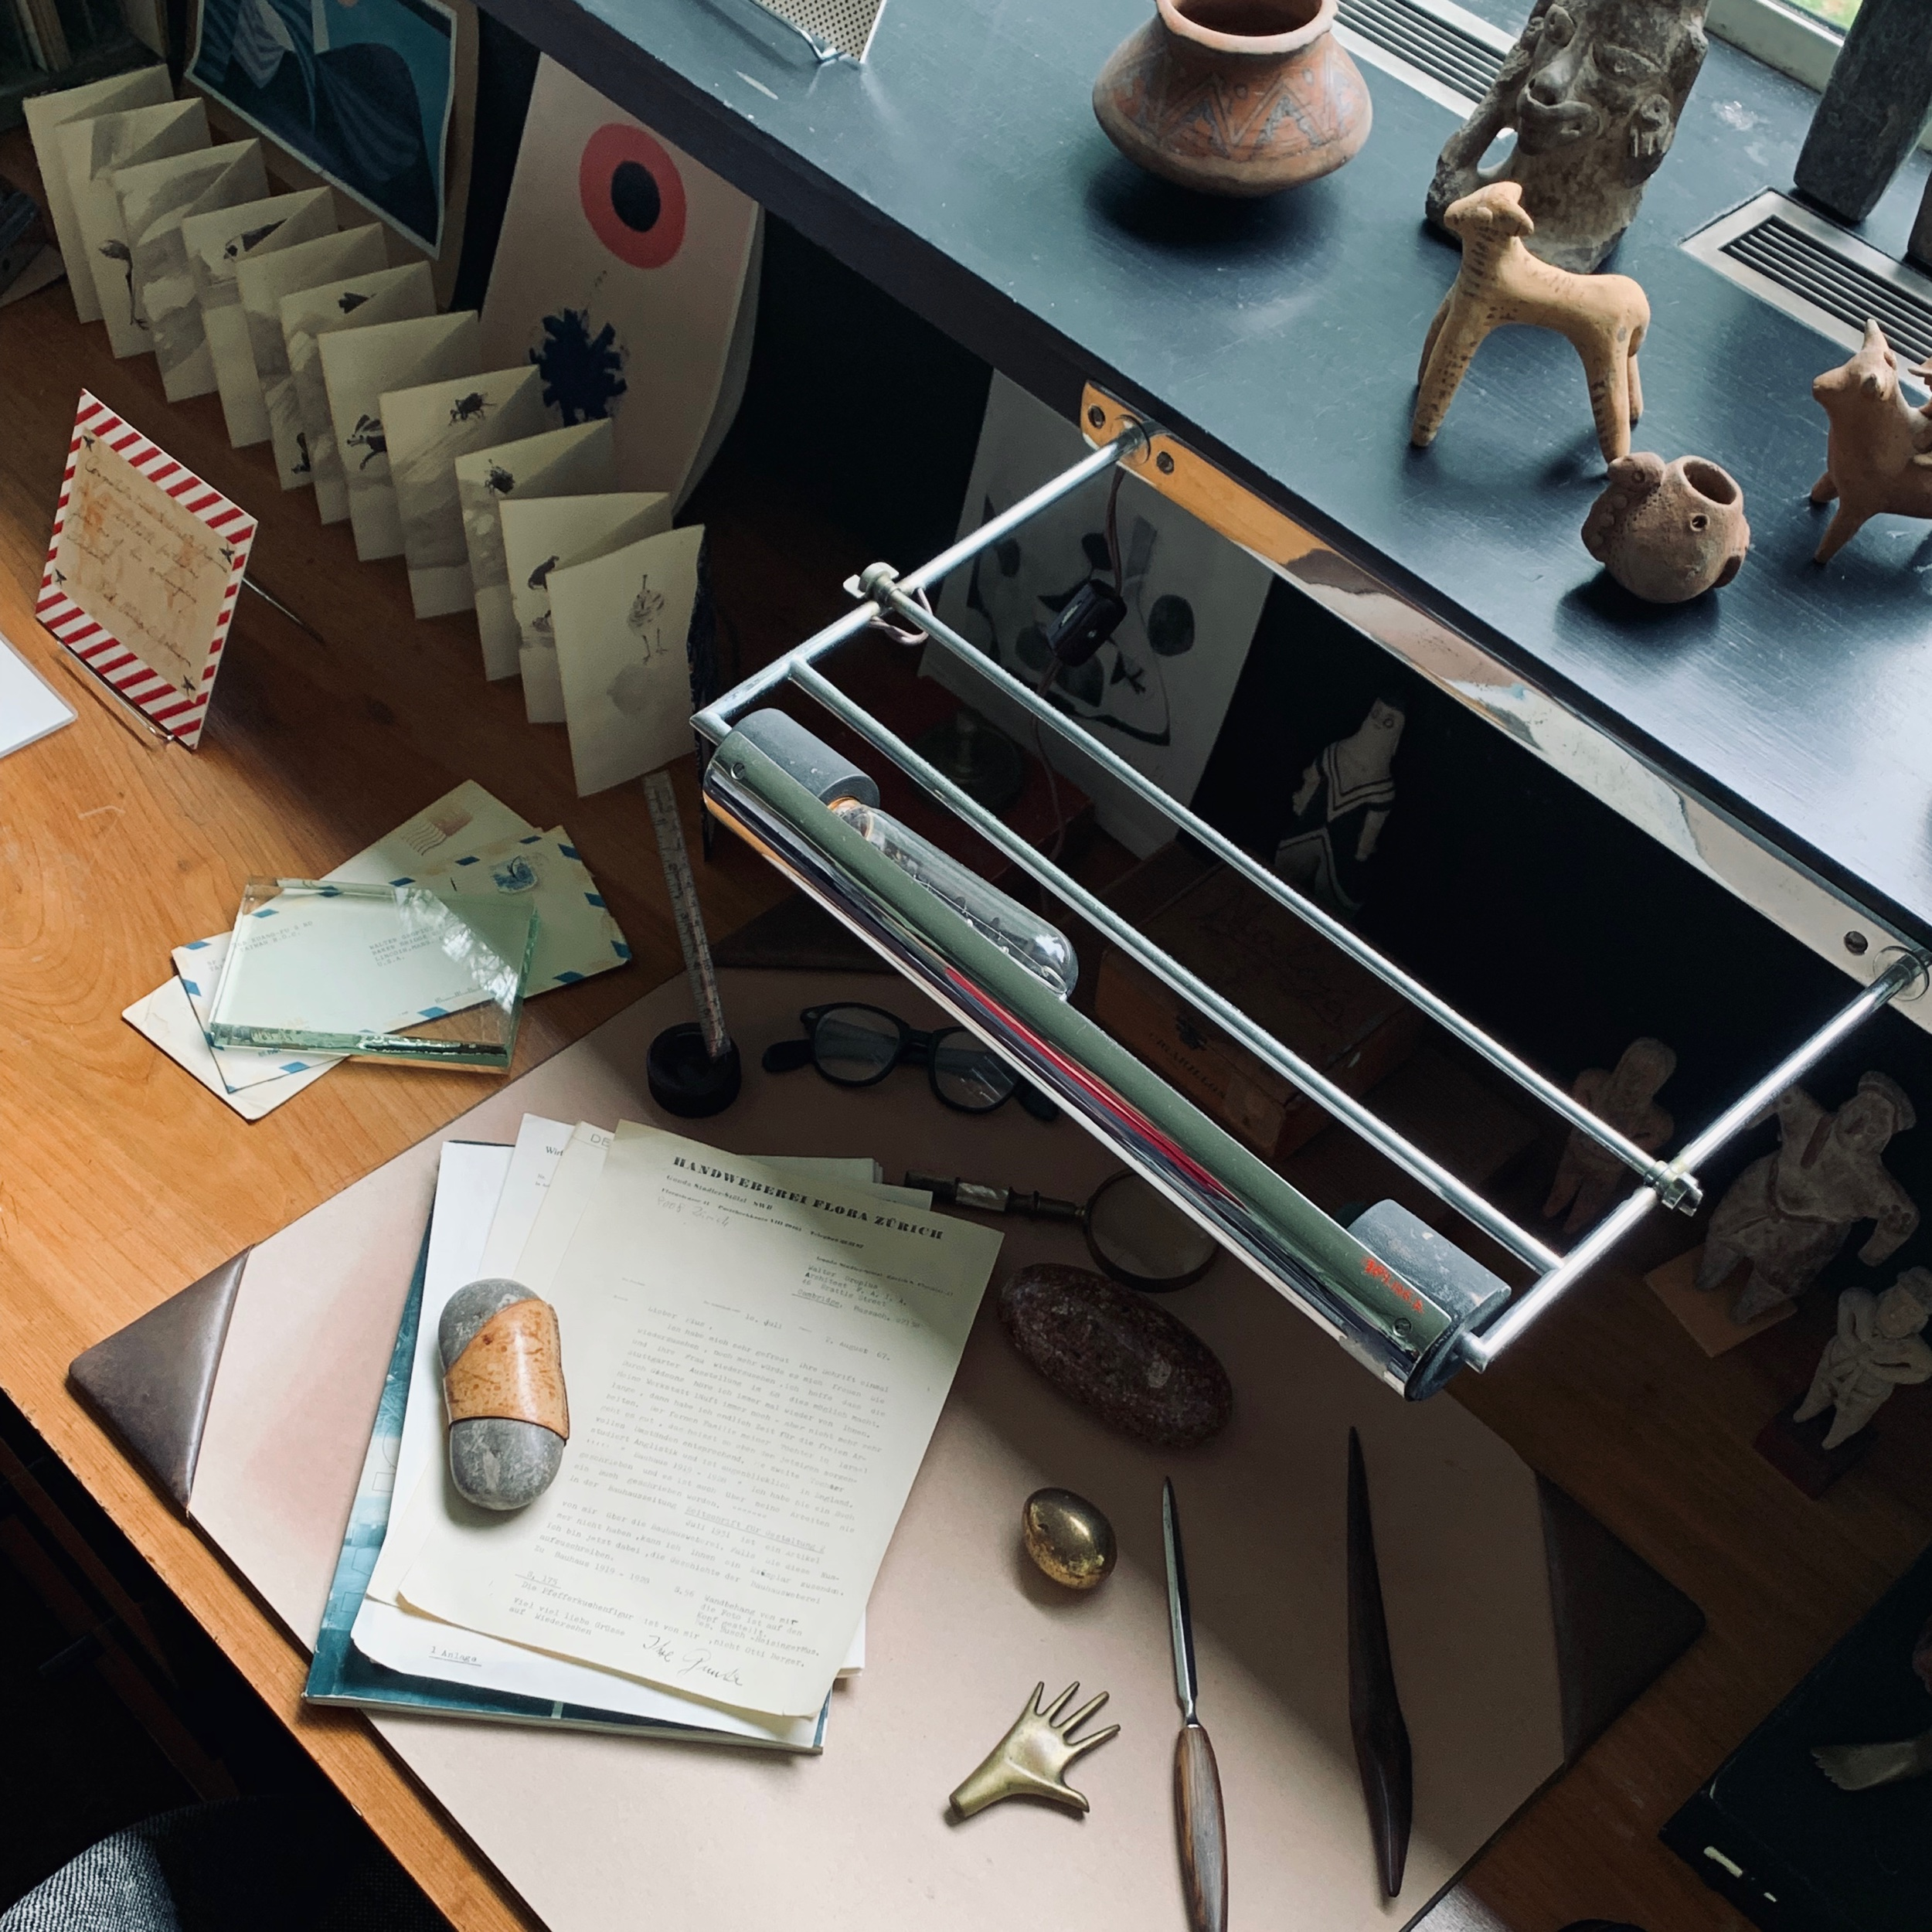 The desk of Walter Gropius, features lamps by Marianne Brandt and pre-Colombian artifacts from Diego Rivera and Frieda Kahlo.